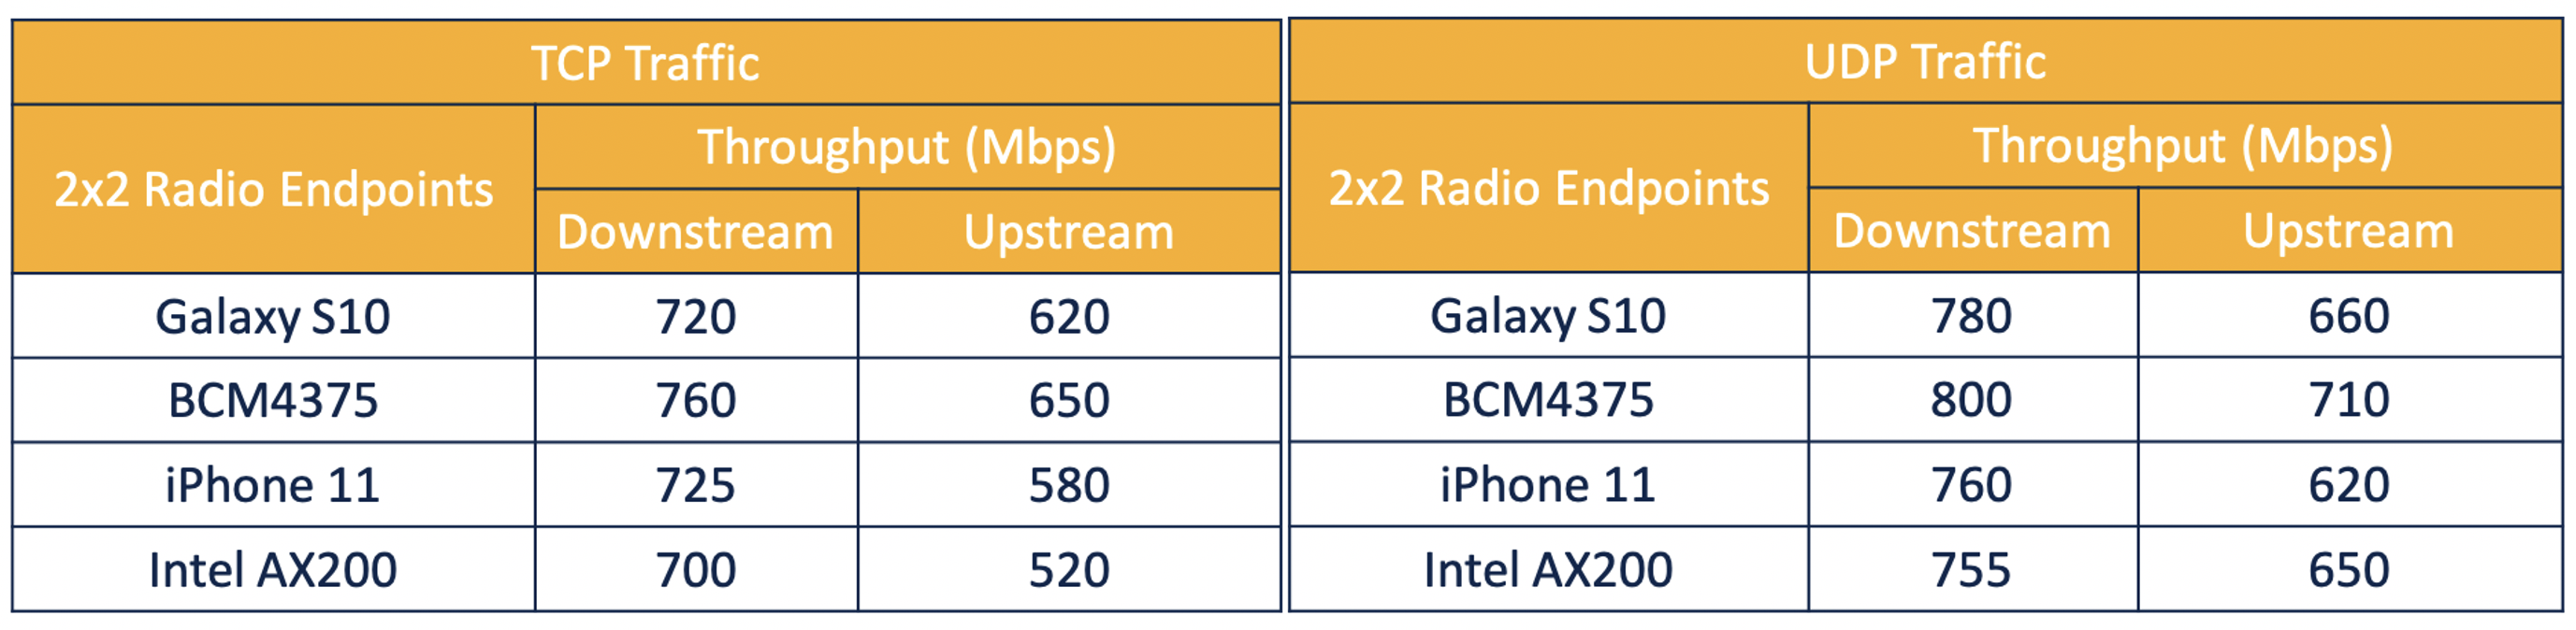 Cisco internal Catalyst 9105 throughput test results